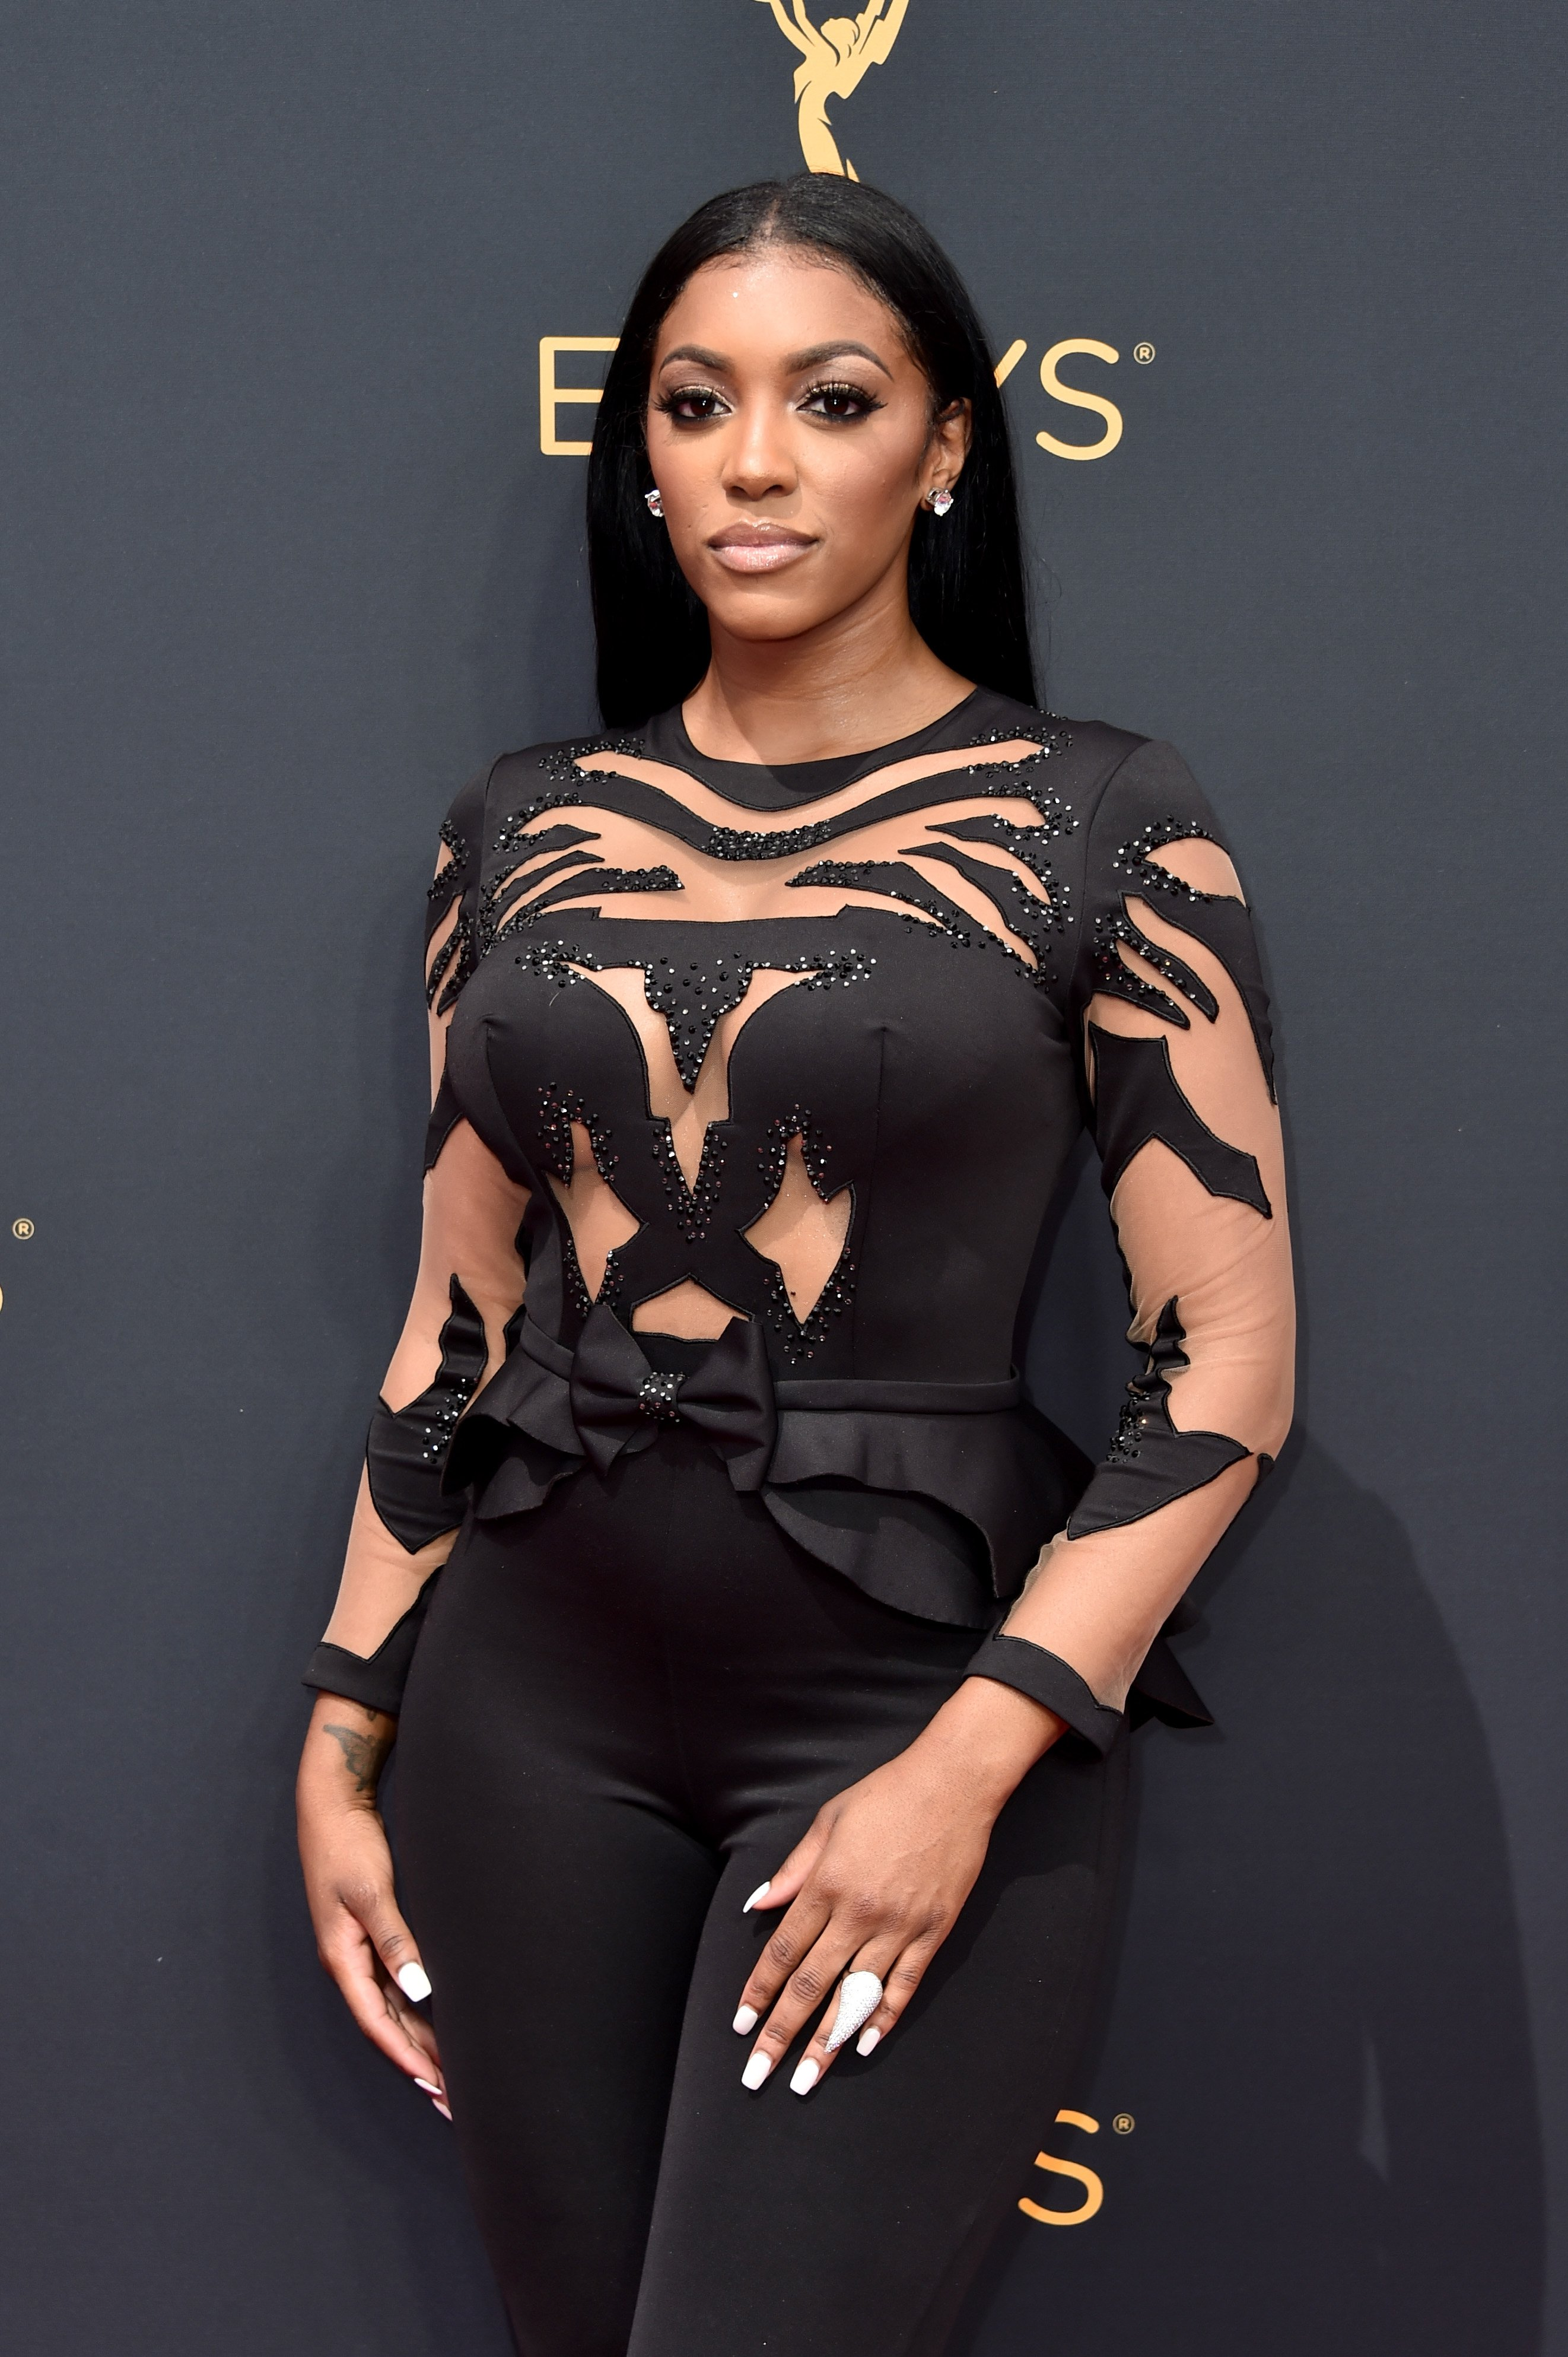 Porsha Williams attends the 68th Annual Primetime Emmy Awards at Microsoft Theater on September 18, 2016 in Los Angeles, California | Photo: Getty Images